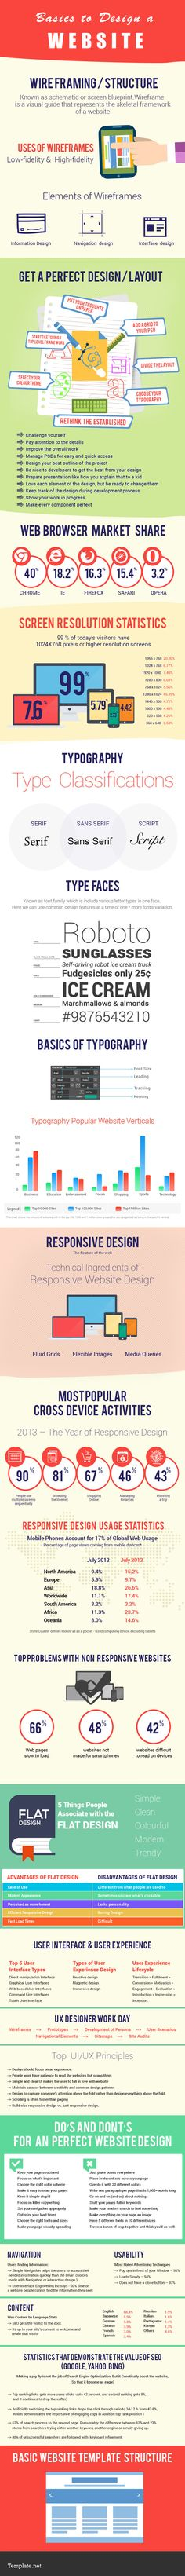 Infographic: Website Design Basics and Trends